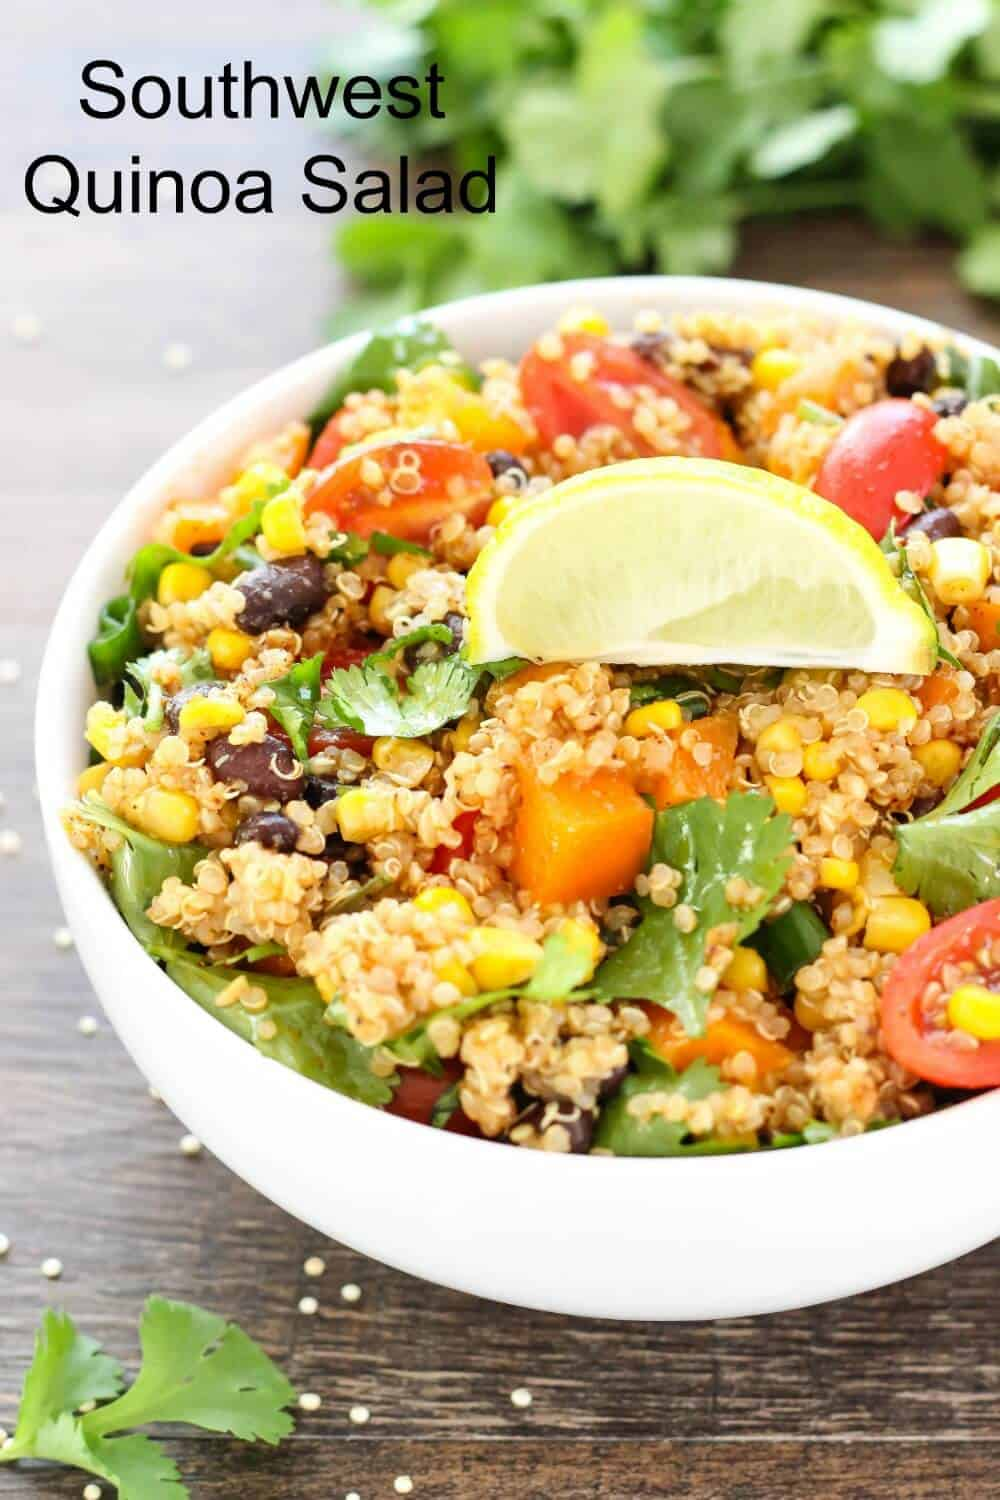 Communication on this topic: Southwestern Quinoa Salad, southwestern-quinoa-salad/